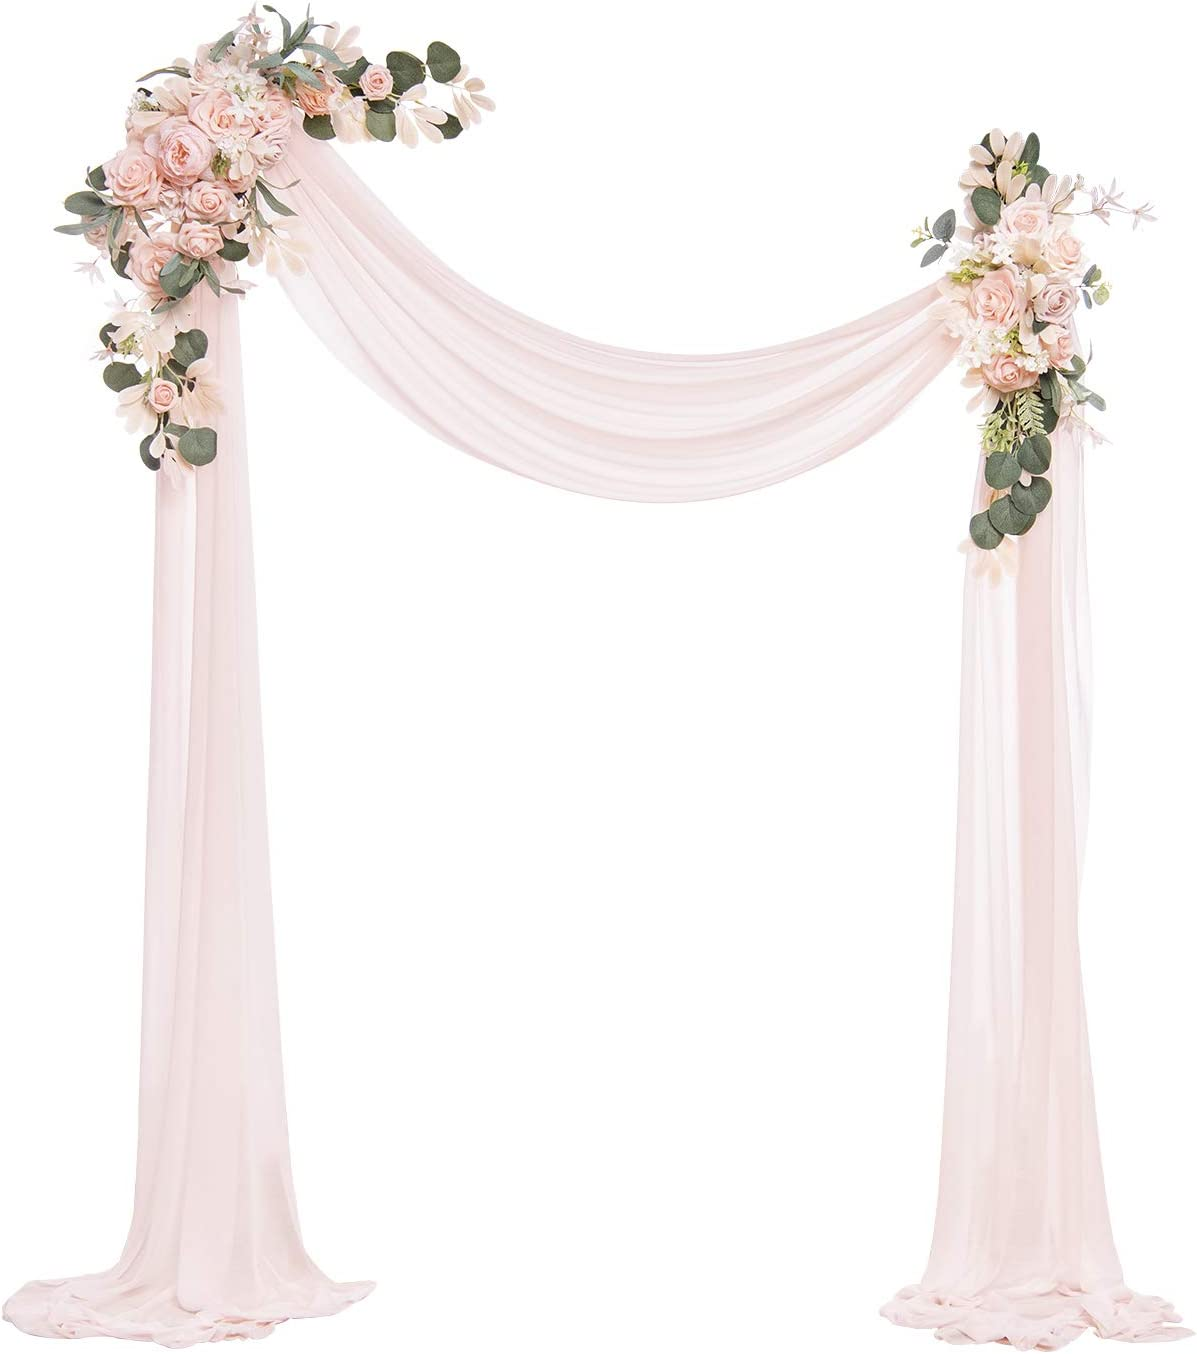 Ling's moment Artificial Wedding Arch Flowers Kit(Pack of 3) - 2pcs Blush & Pink Aobor Floral Arrangement with 1pc Semi-Sheer Swag for Ceremony and Reception Backdrop Decoration